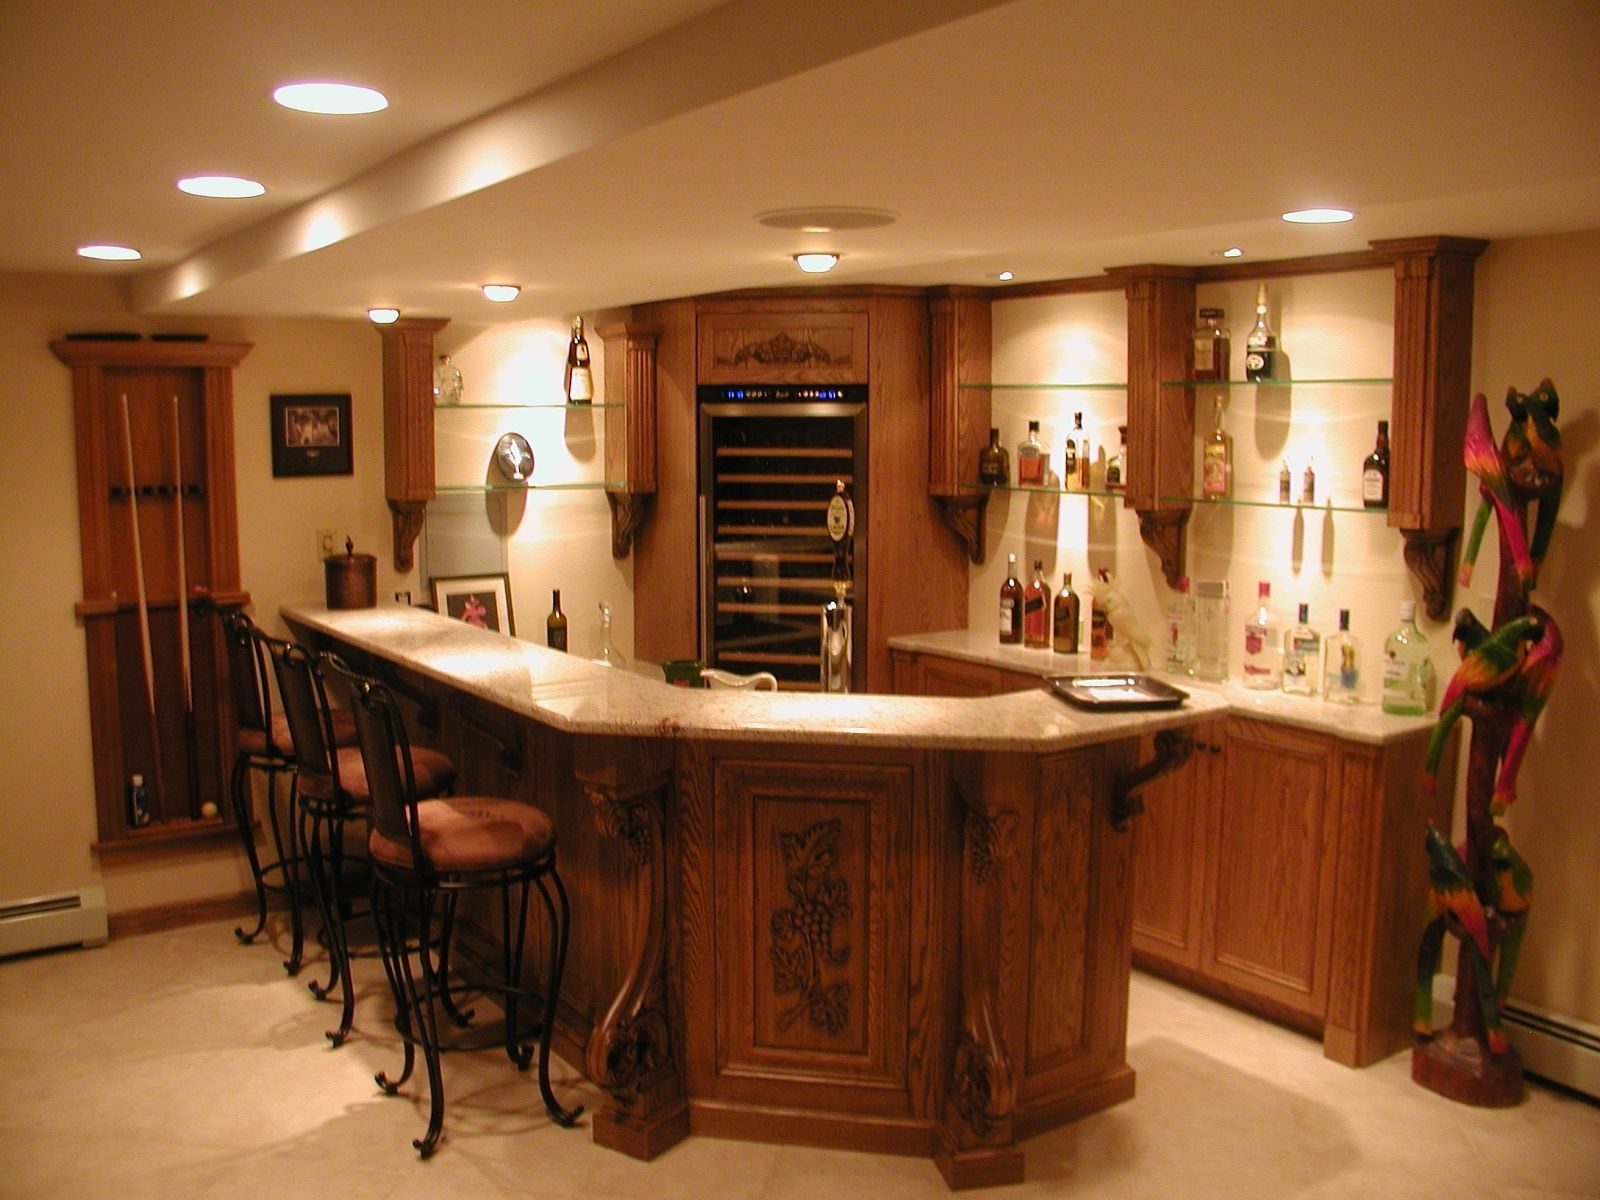 Bathroom House Plans Custom Oak Bar With Granite Top And Enkeboll Mouldings By